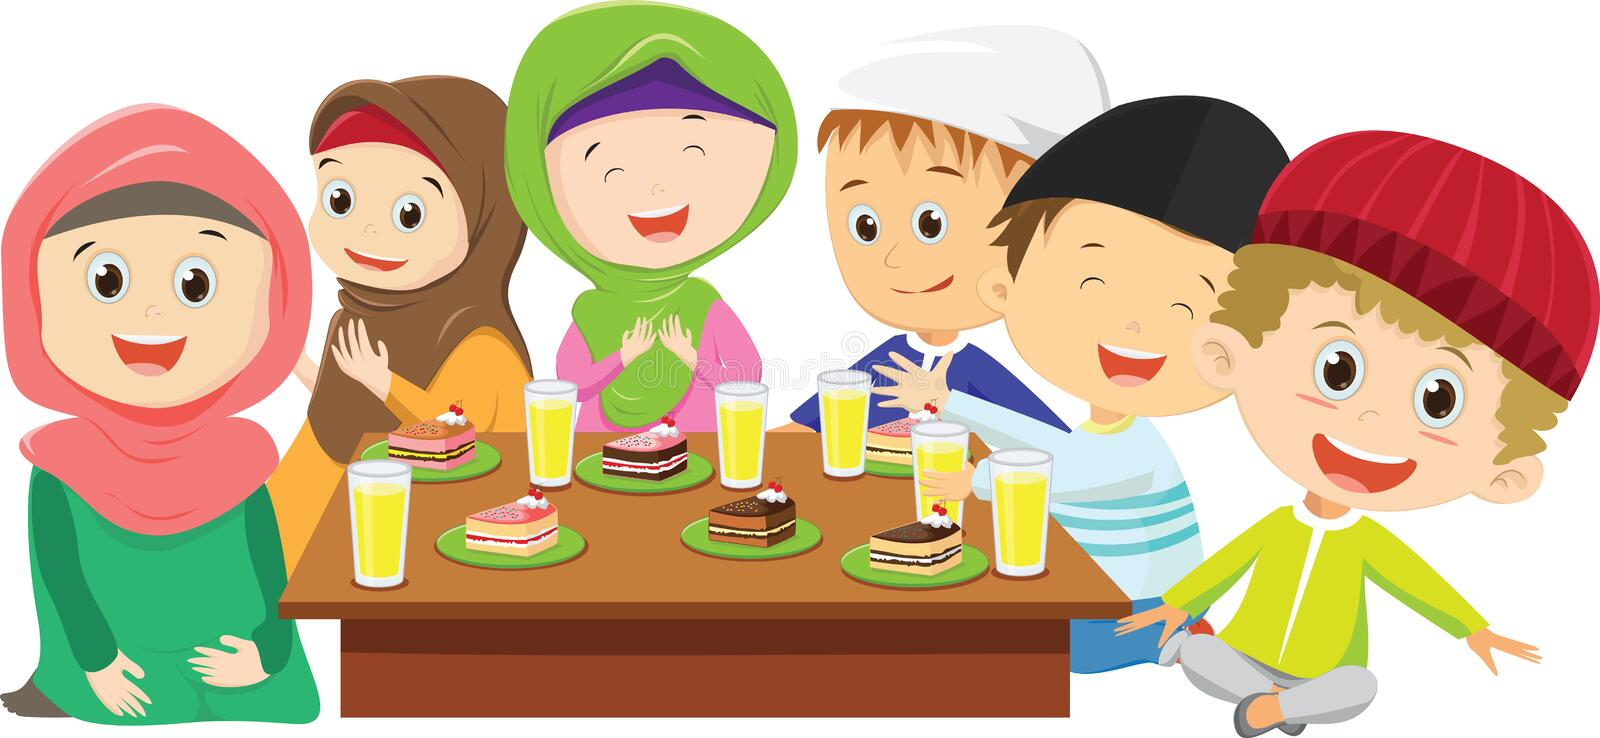 happy Muslim boys and girls eating fasting dinner together stock illustration